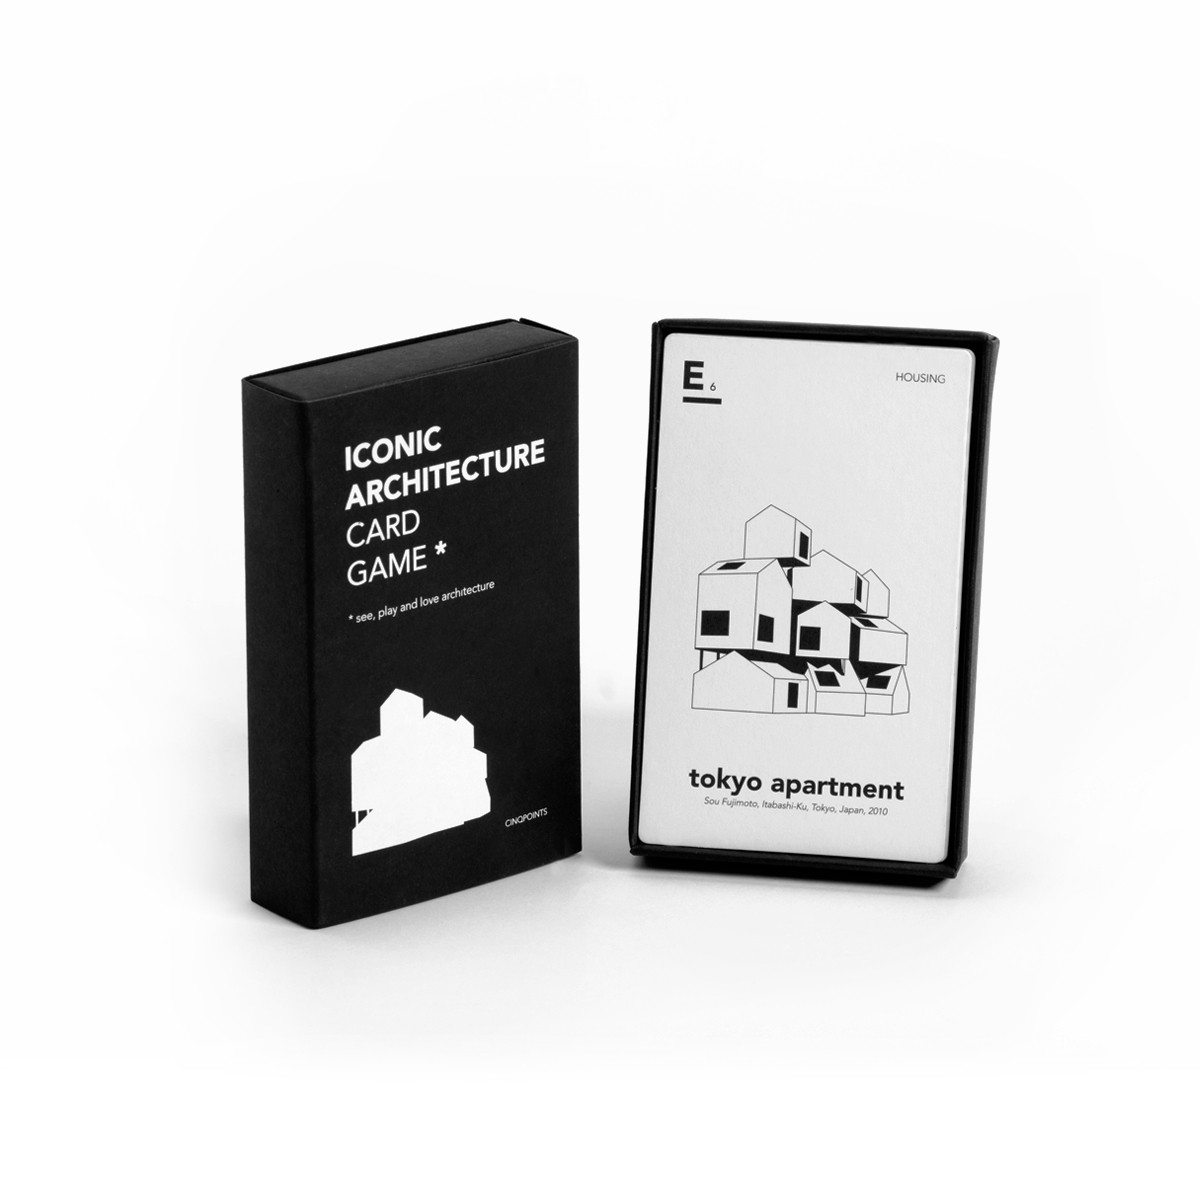 $12 - Iconic Architecture Card Game